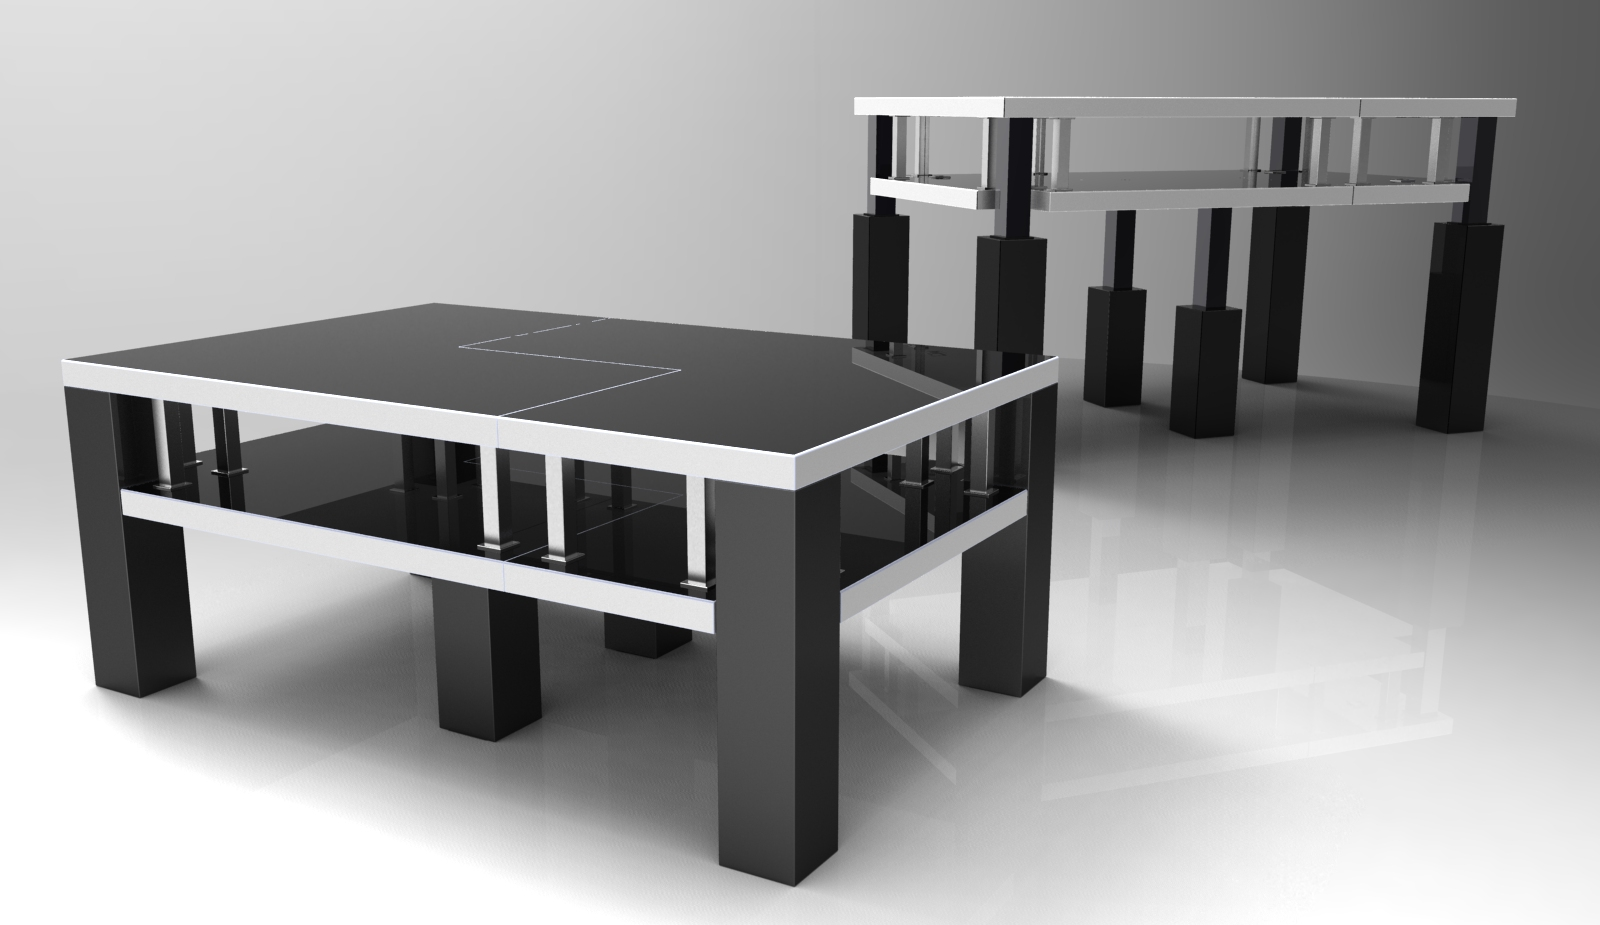 Tridesk space saving furniture by ferman vong at Space saving furniture